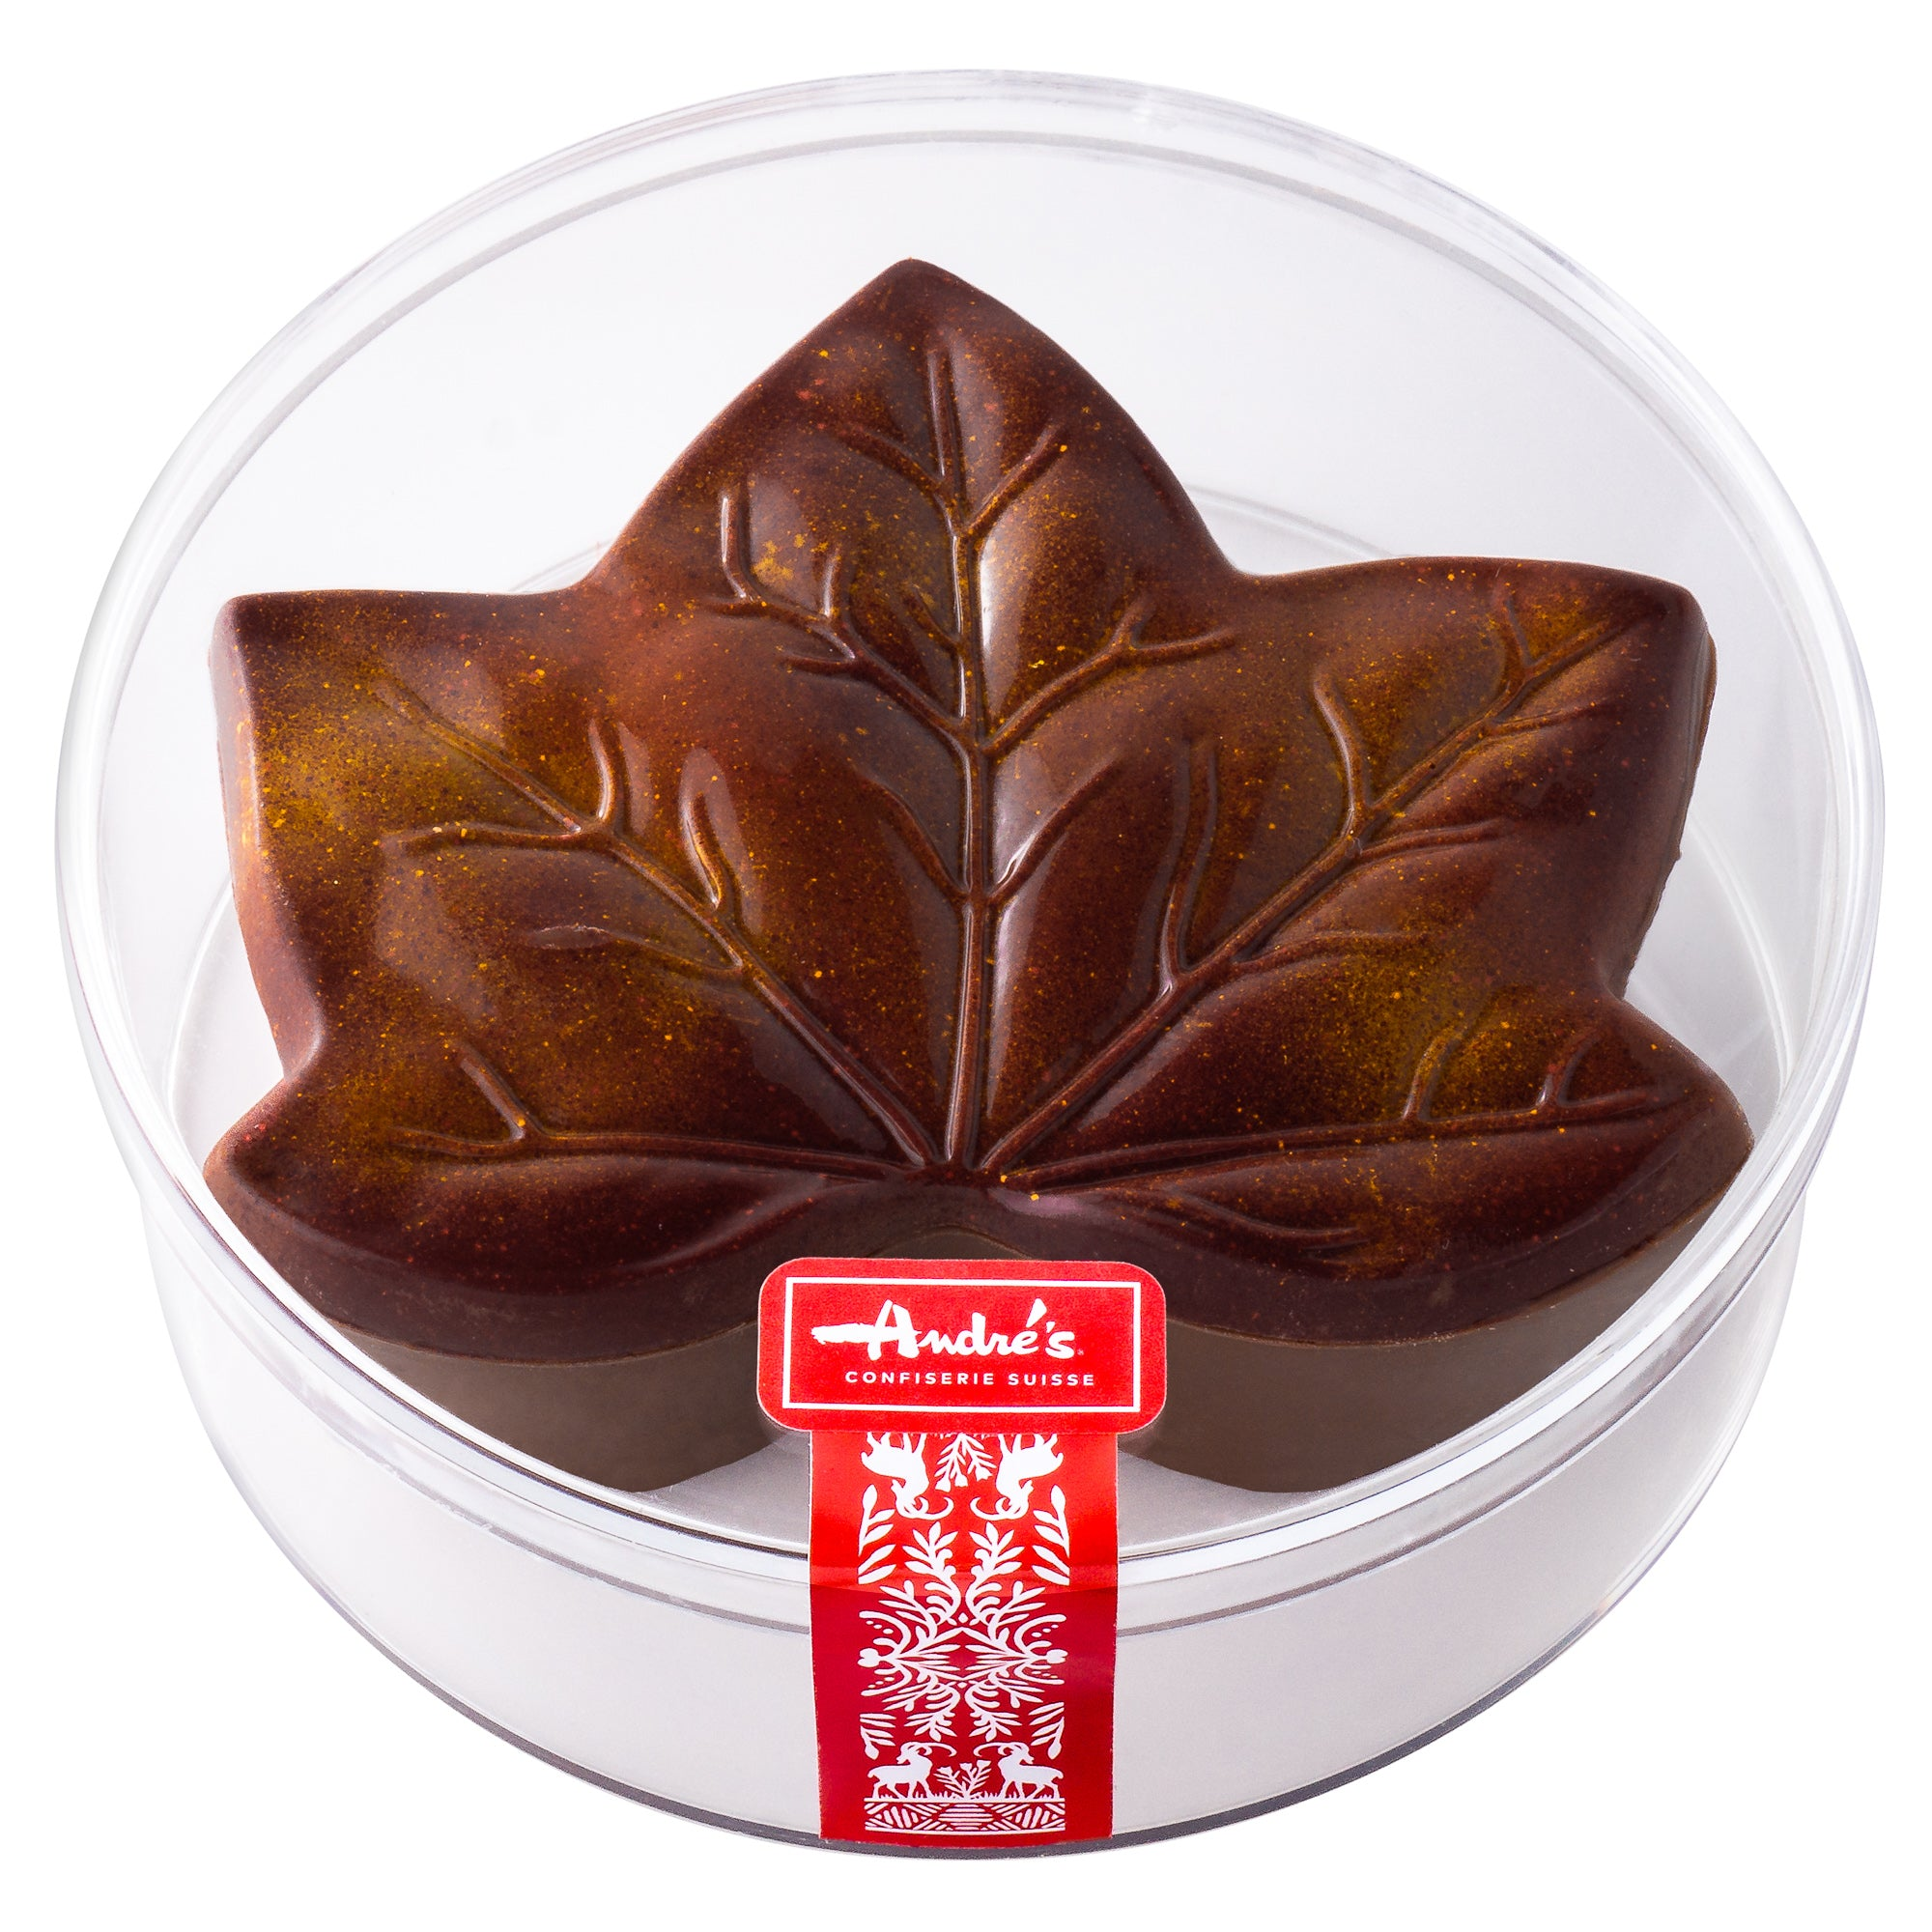 Chocolate Almond Filled Leaf Box